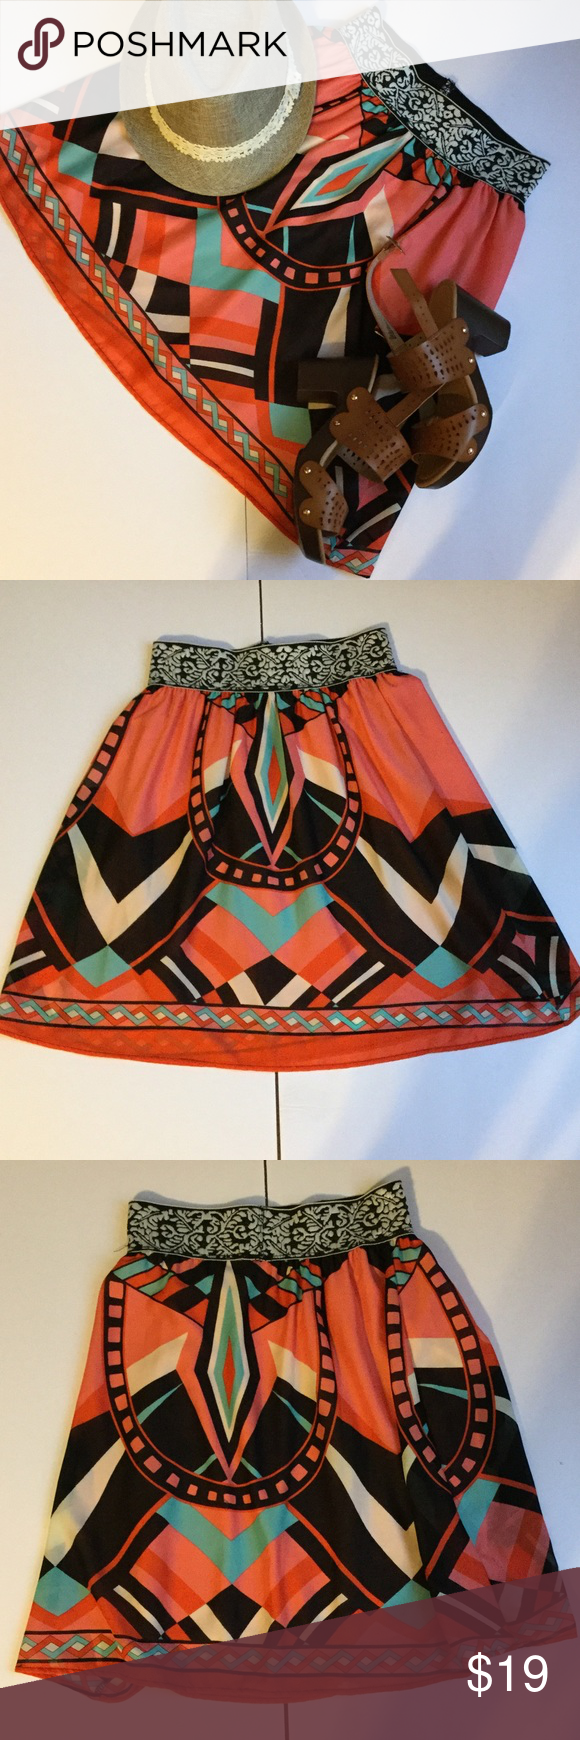 NEW LISTING Francesca's skirt ❤️❤️❤️❤️ NEW LISTING Francesca's skirt with beautiful pattern and coordinating band at waist. The skirt is approx 21 in from top of skirt to bottom hem. The skirt is fully lined and hand wash. The skirt was bought at Francesca's tag says Peach Love. Francesca's Collections Skirts